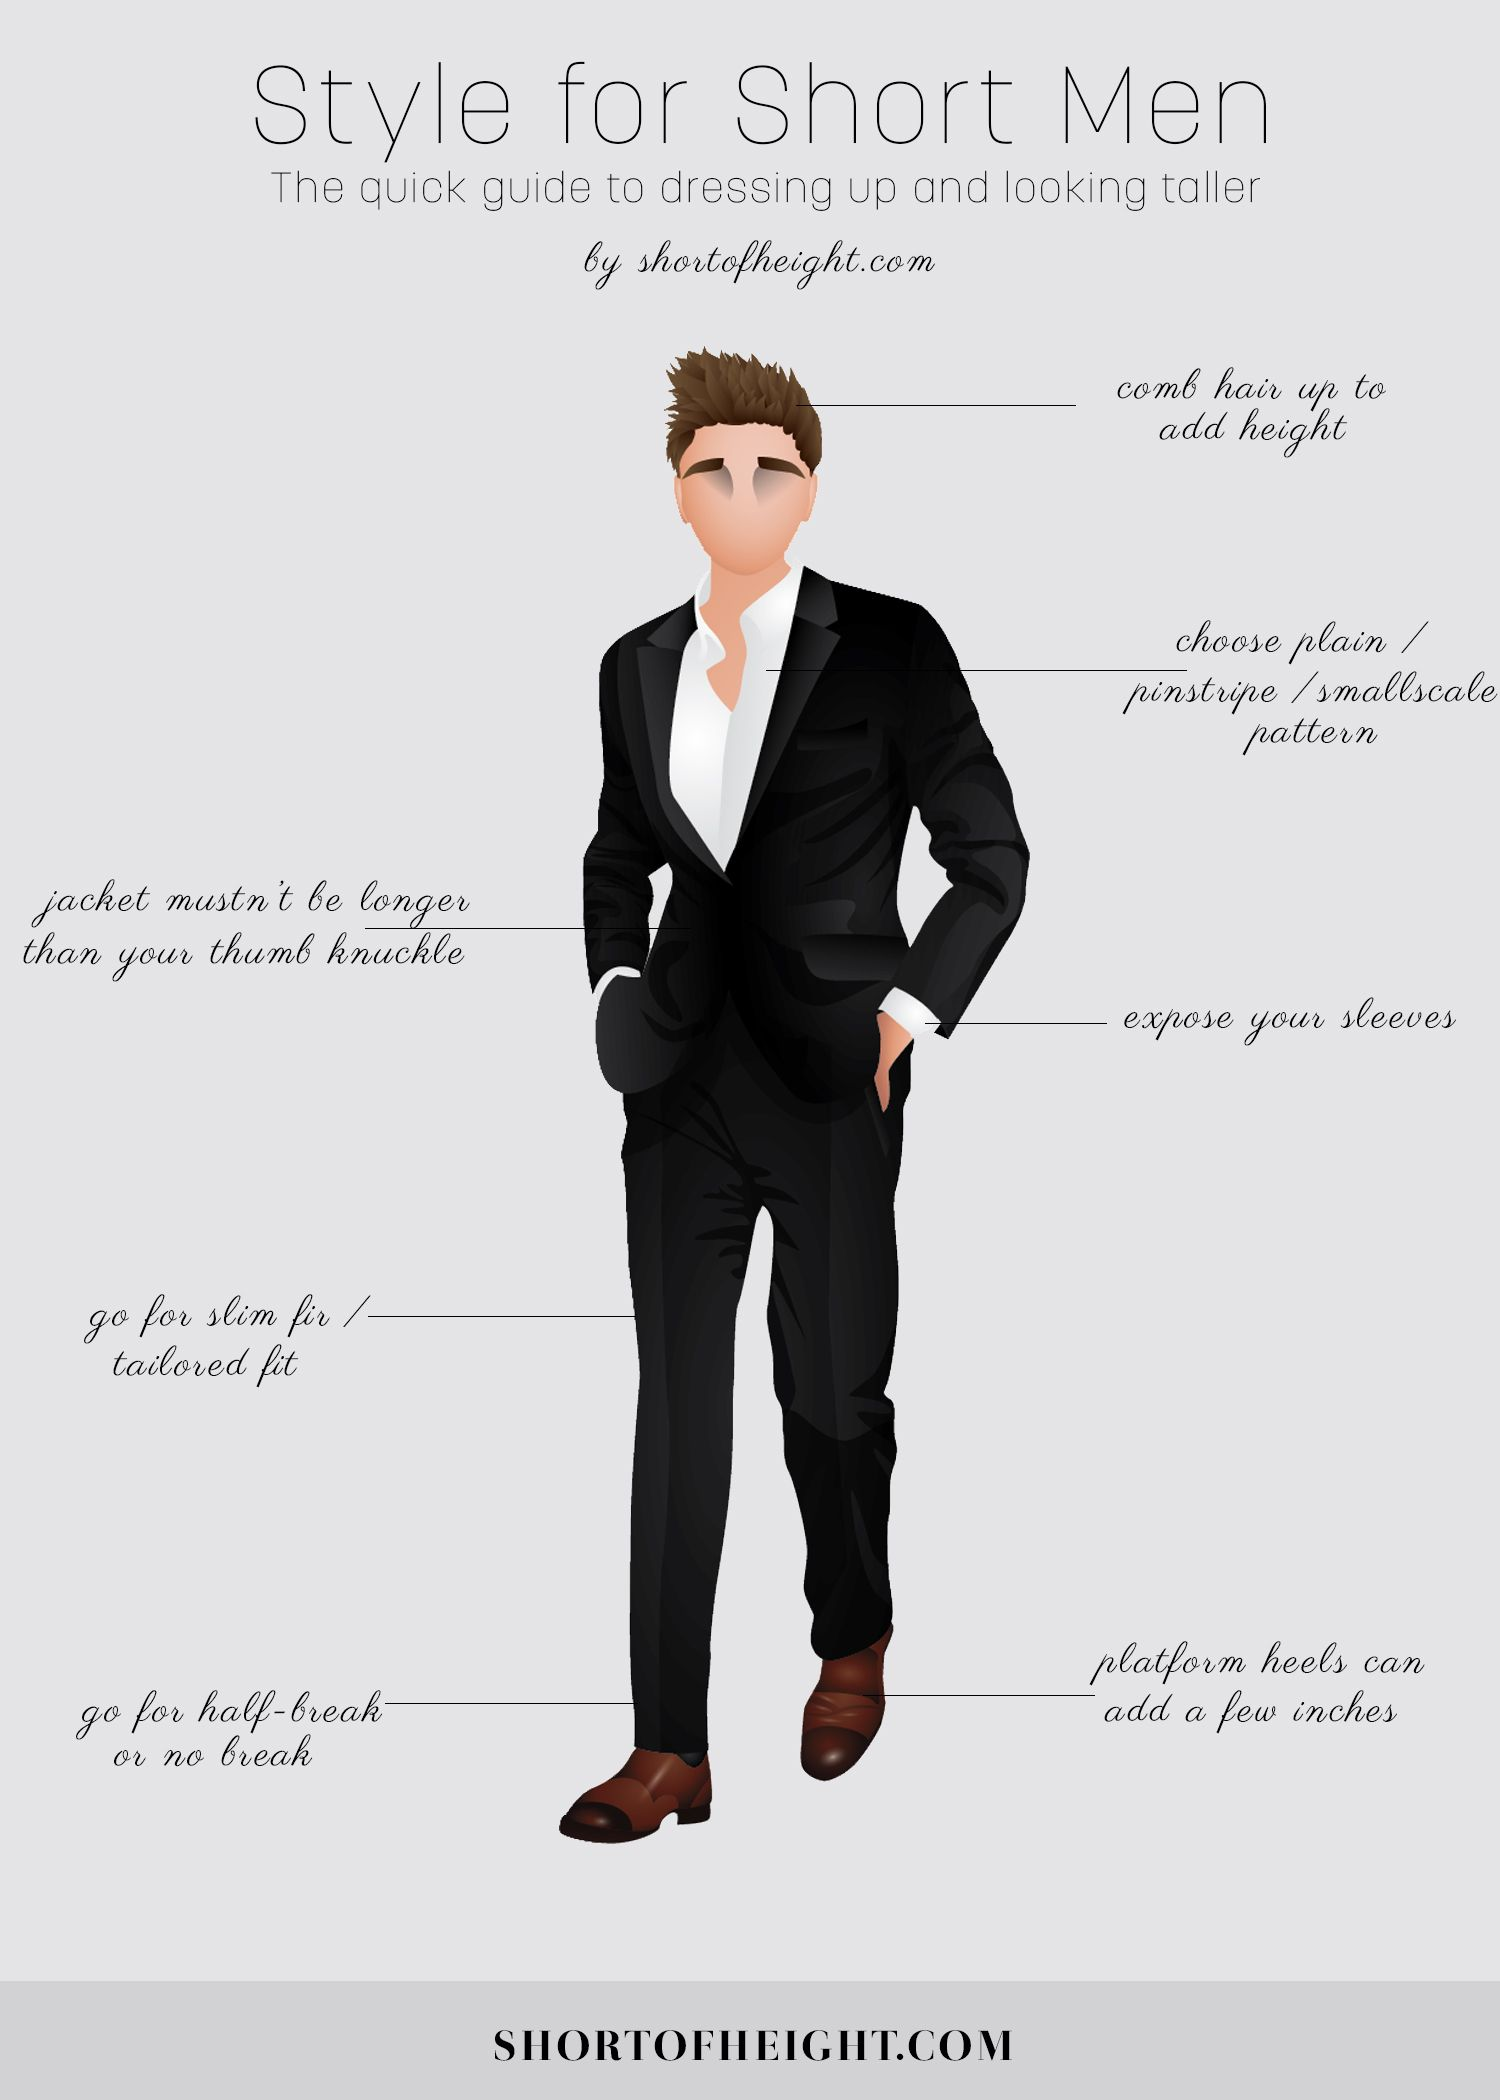 Here s a style for short men infographic to help you be more stylish